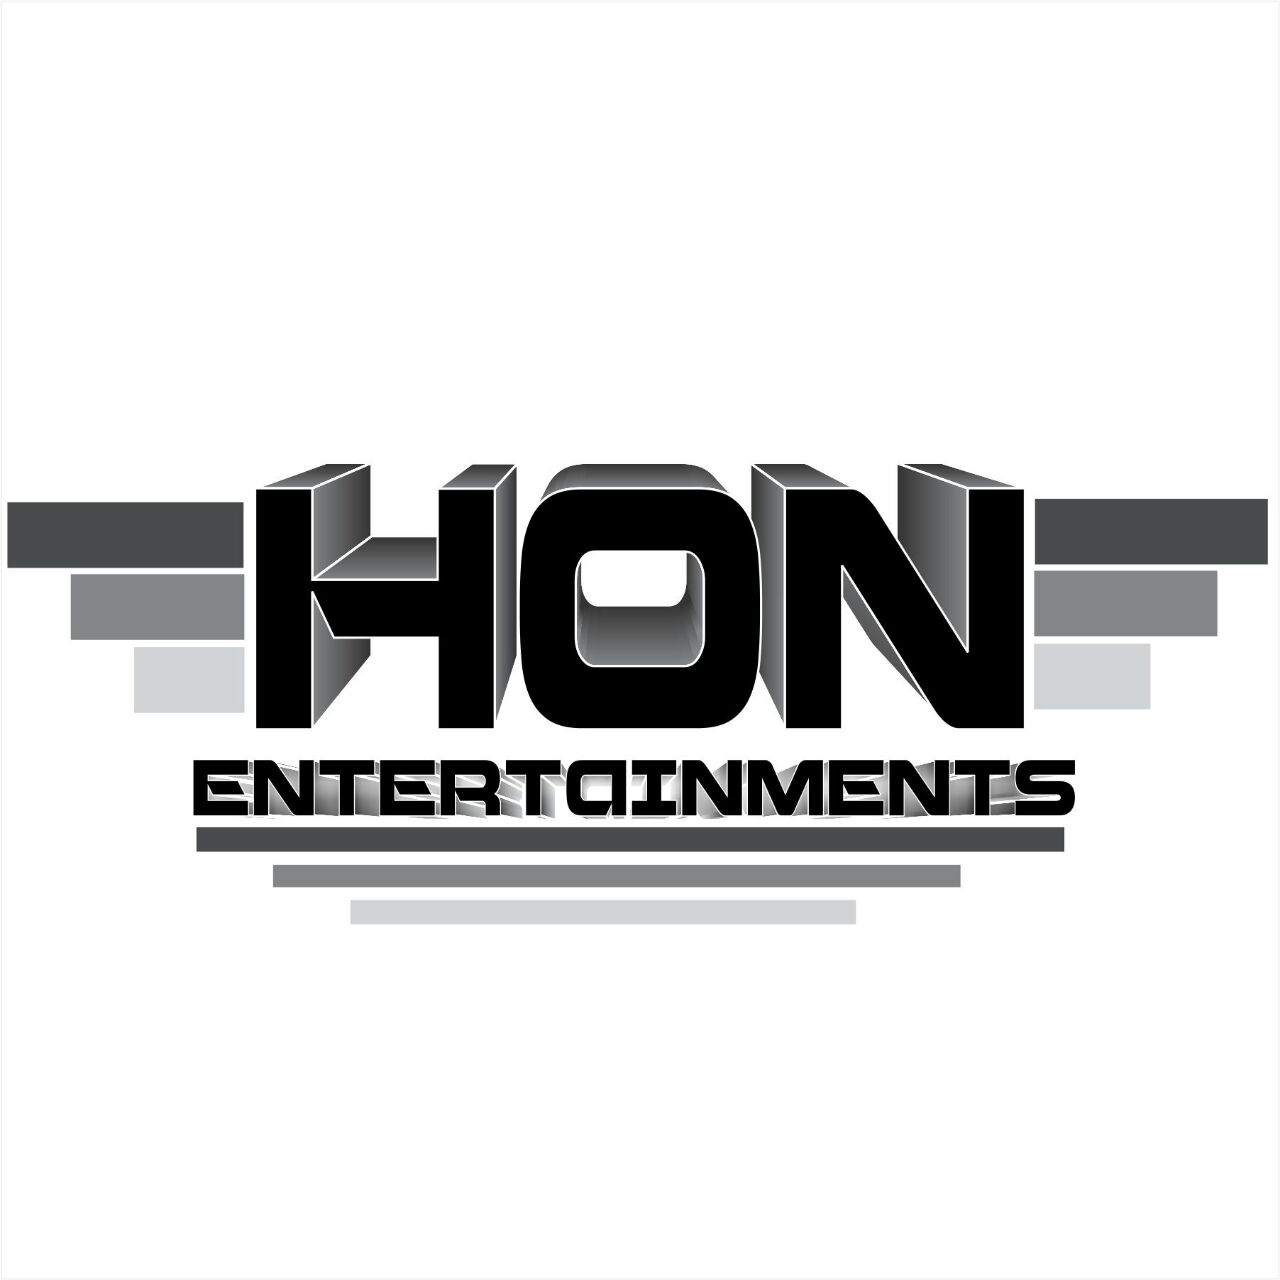 HON ENTERTAINMENTS